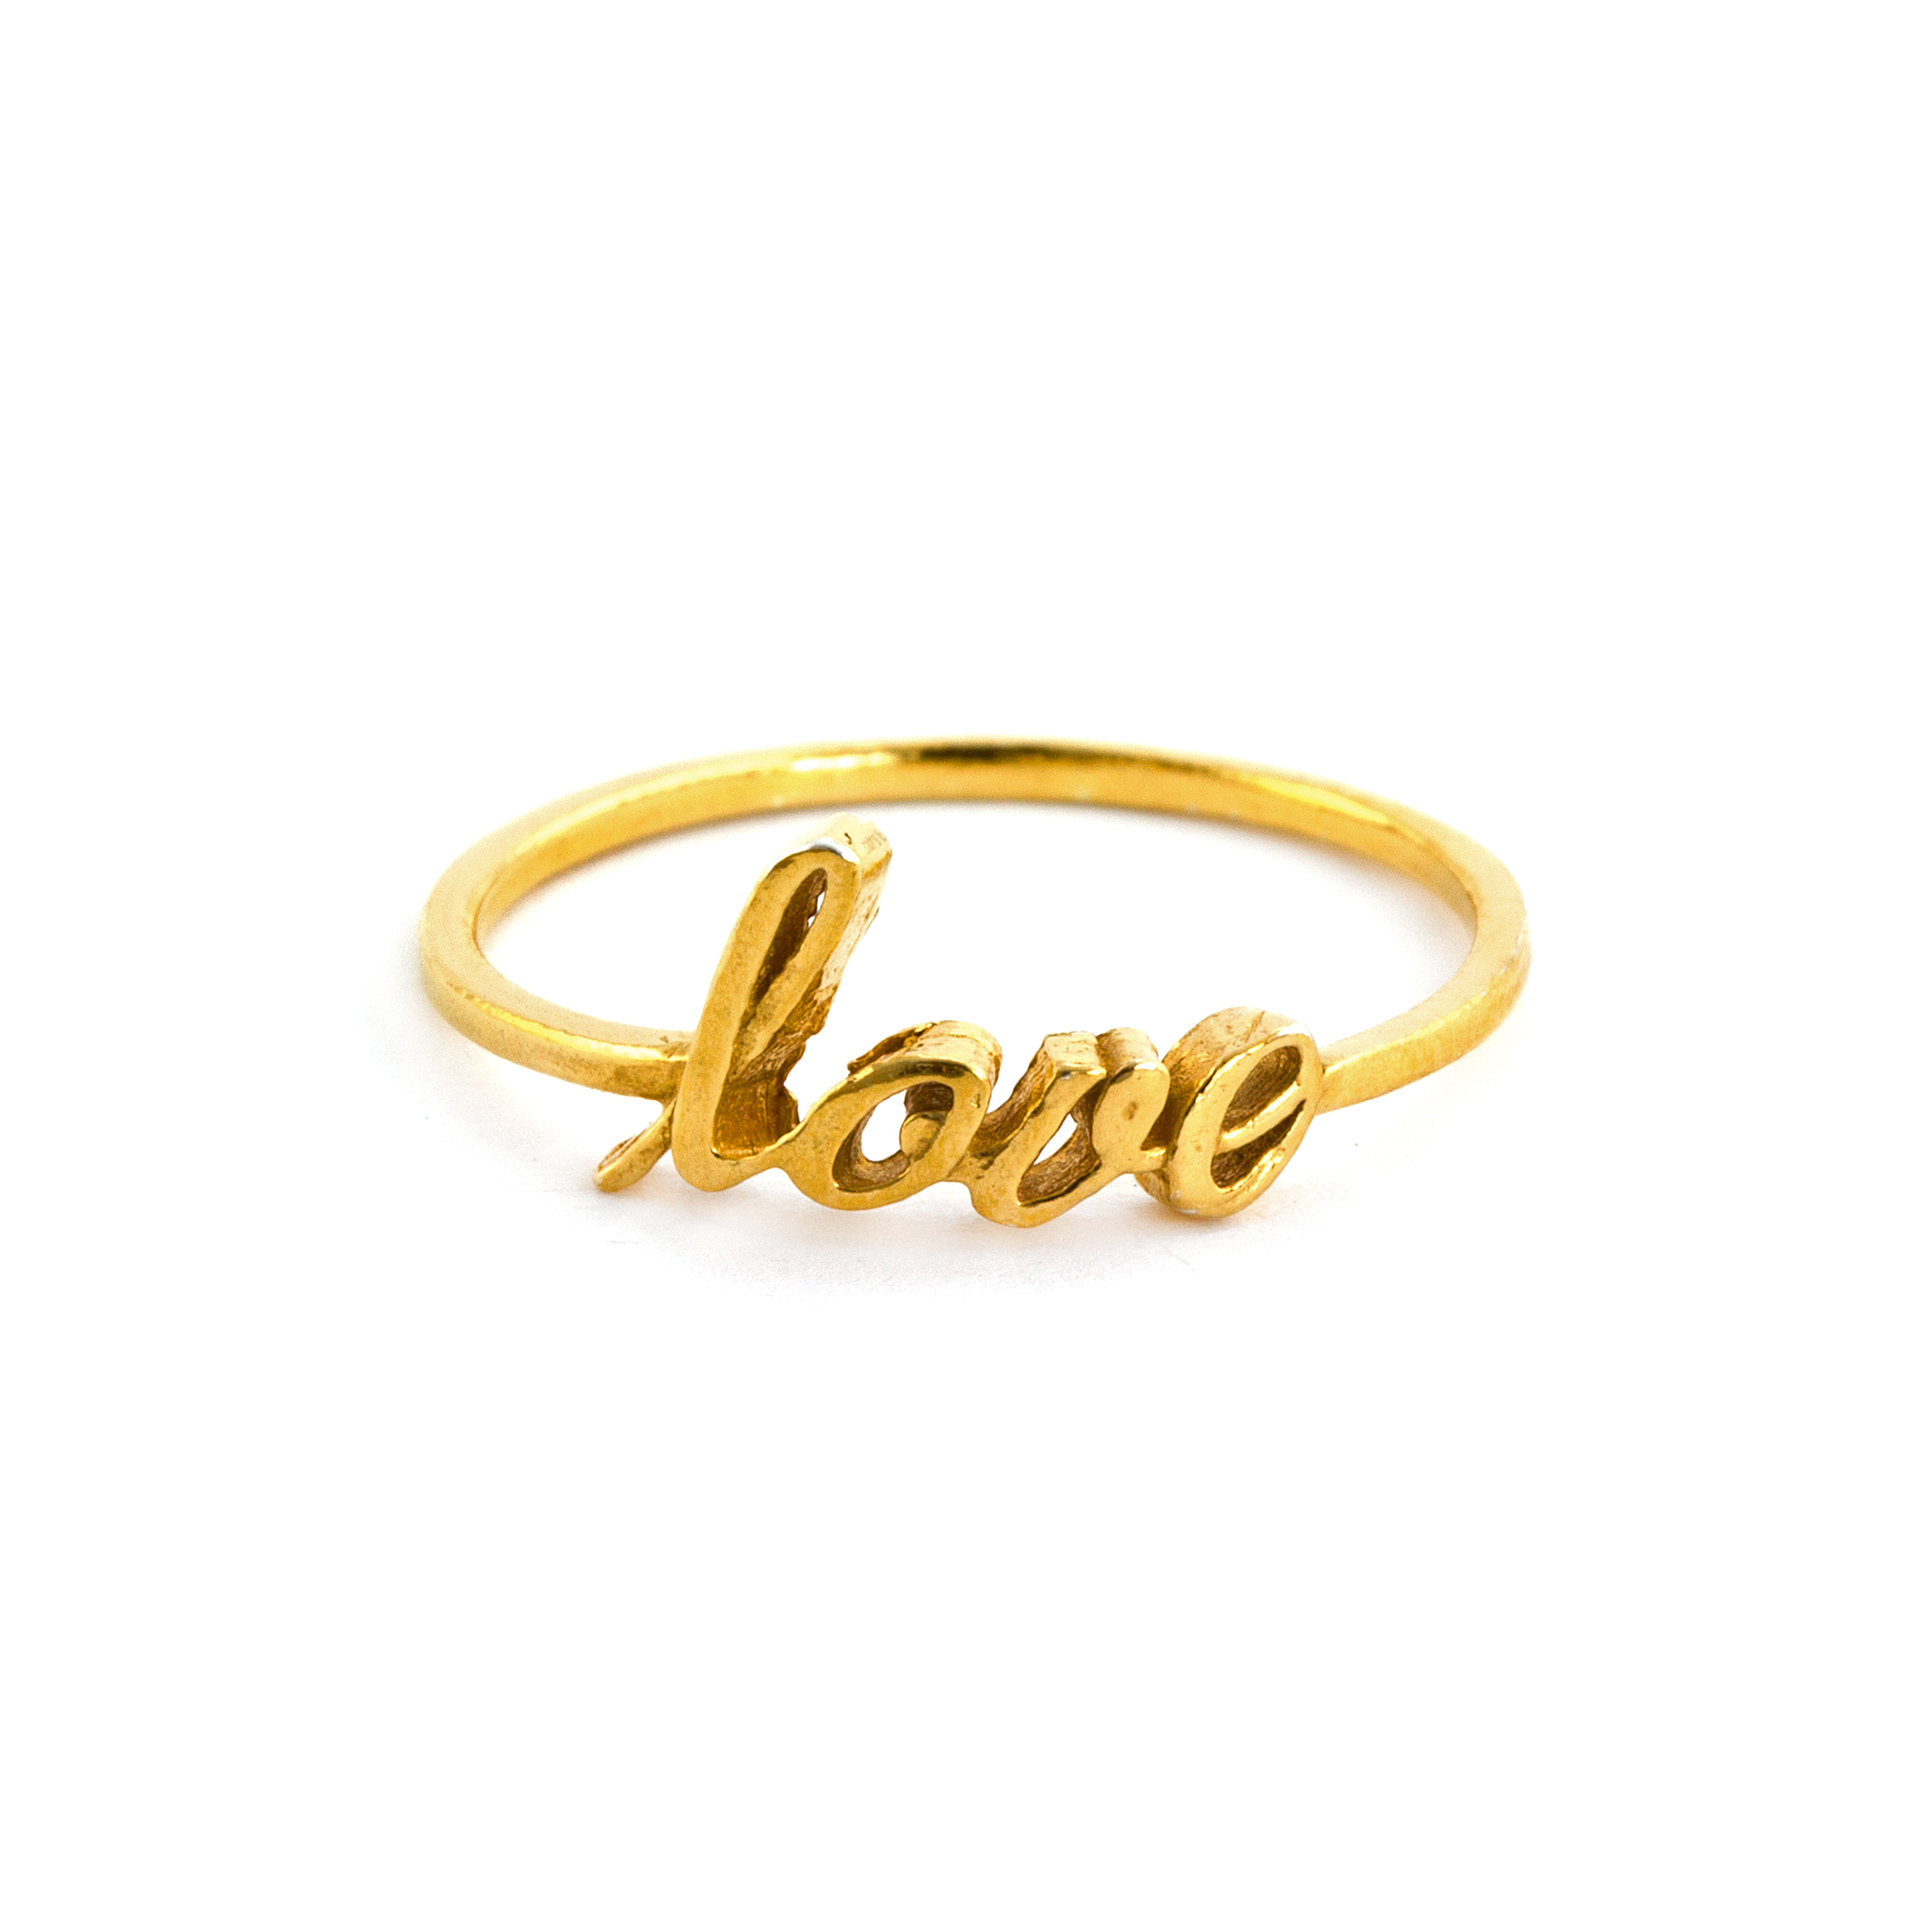 Ring, Love, Sterlingsilber goldplattiert - Alex Monroe - Bild 1